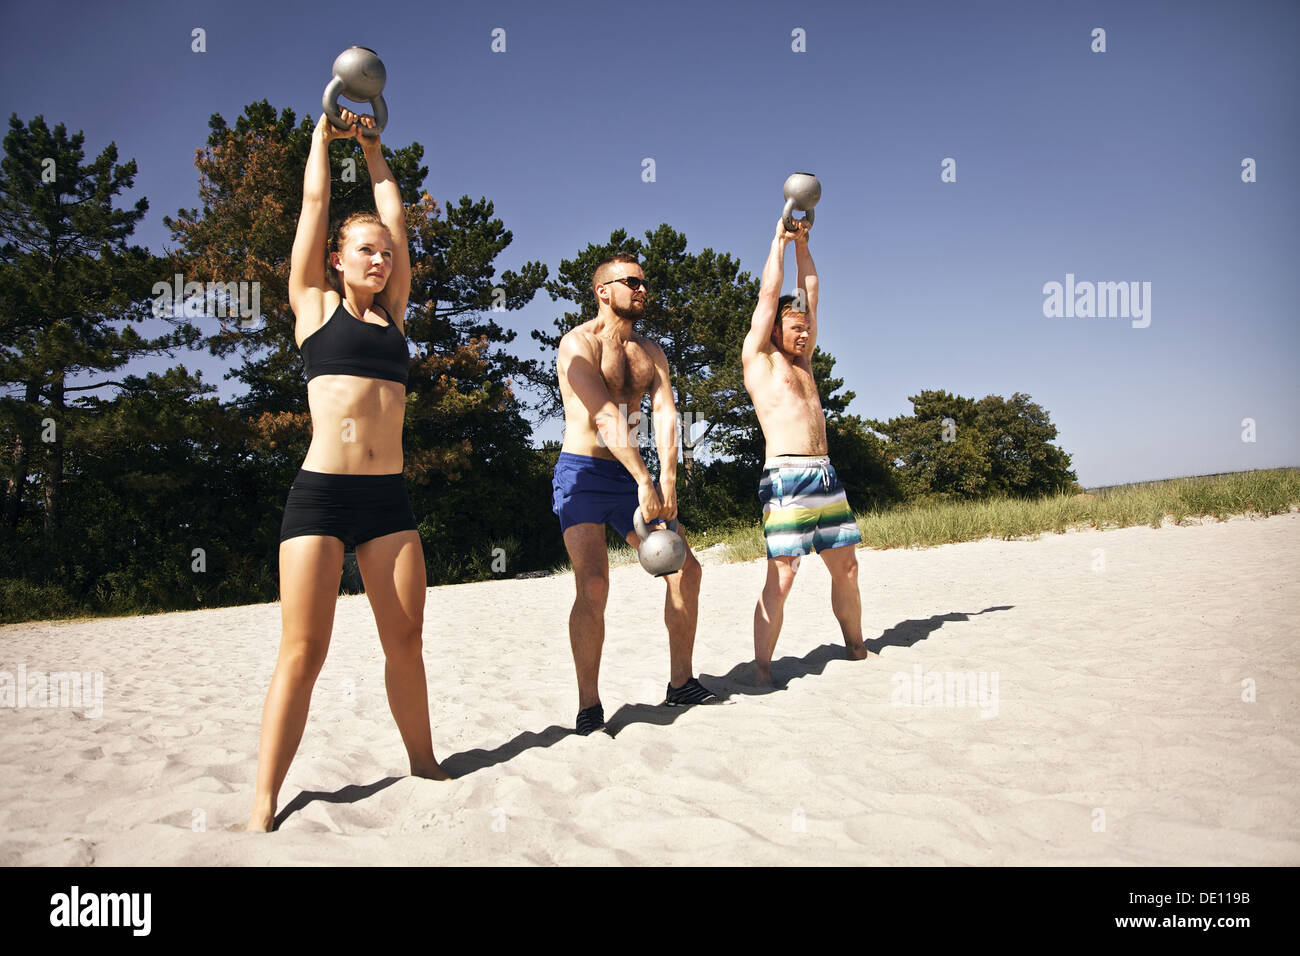 Group of athletes swinging a kettle bell over their head on beach. Young people doing crossfit workout on a hot summer day. - Stock Image